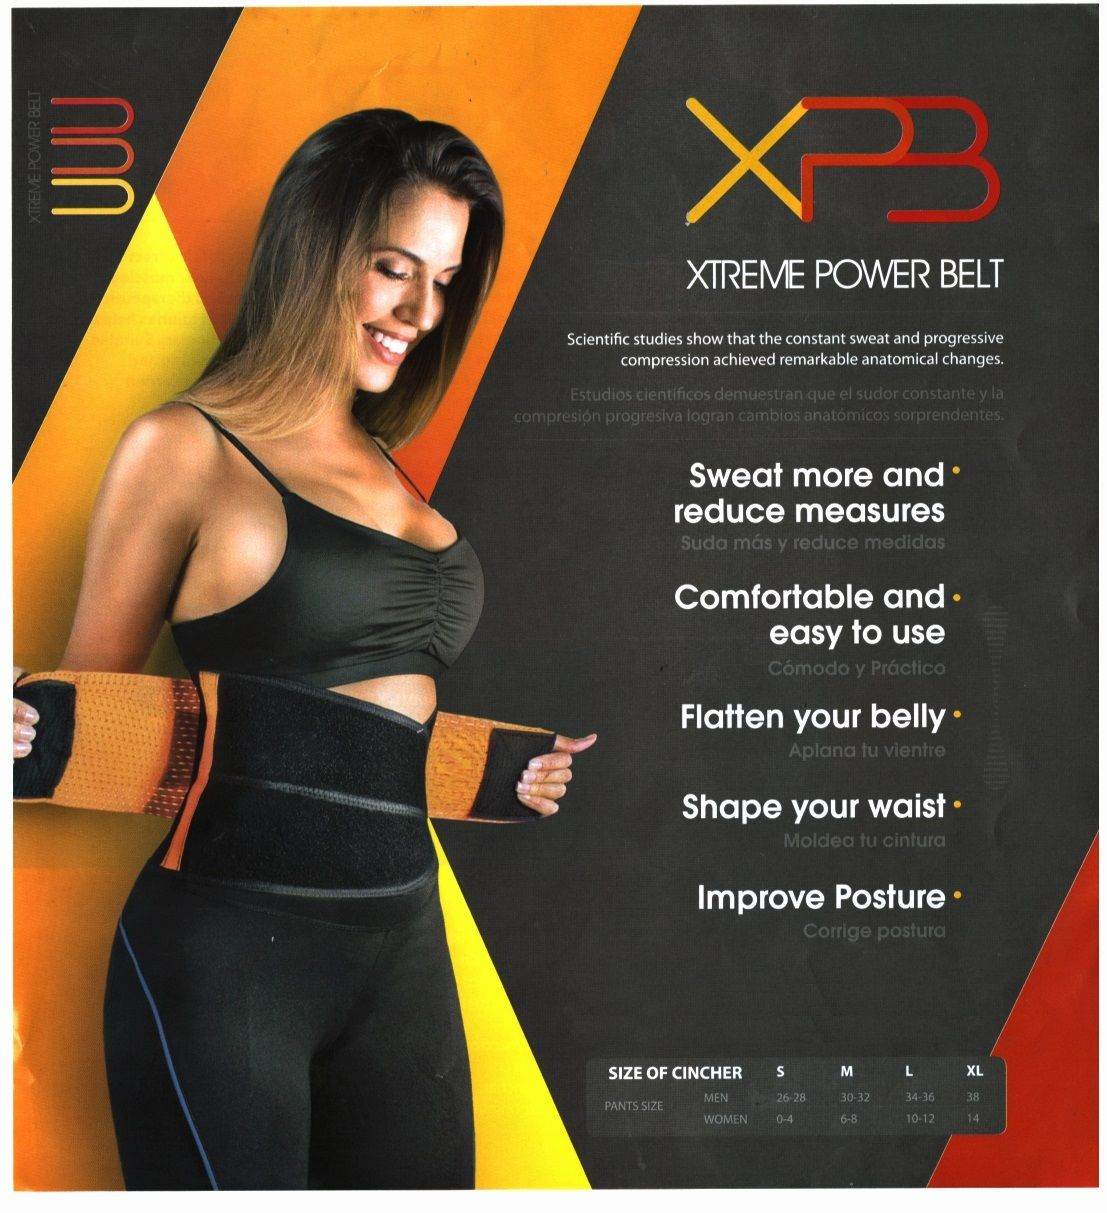 Xtreme Power Belt Orange Shaper (MEDIUM) Support Hot Gym Workout Neoprene  Back Support Lumbar